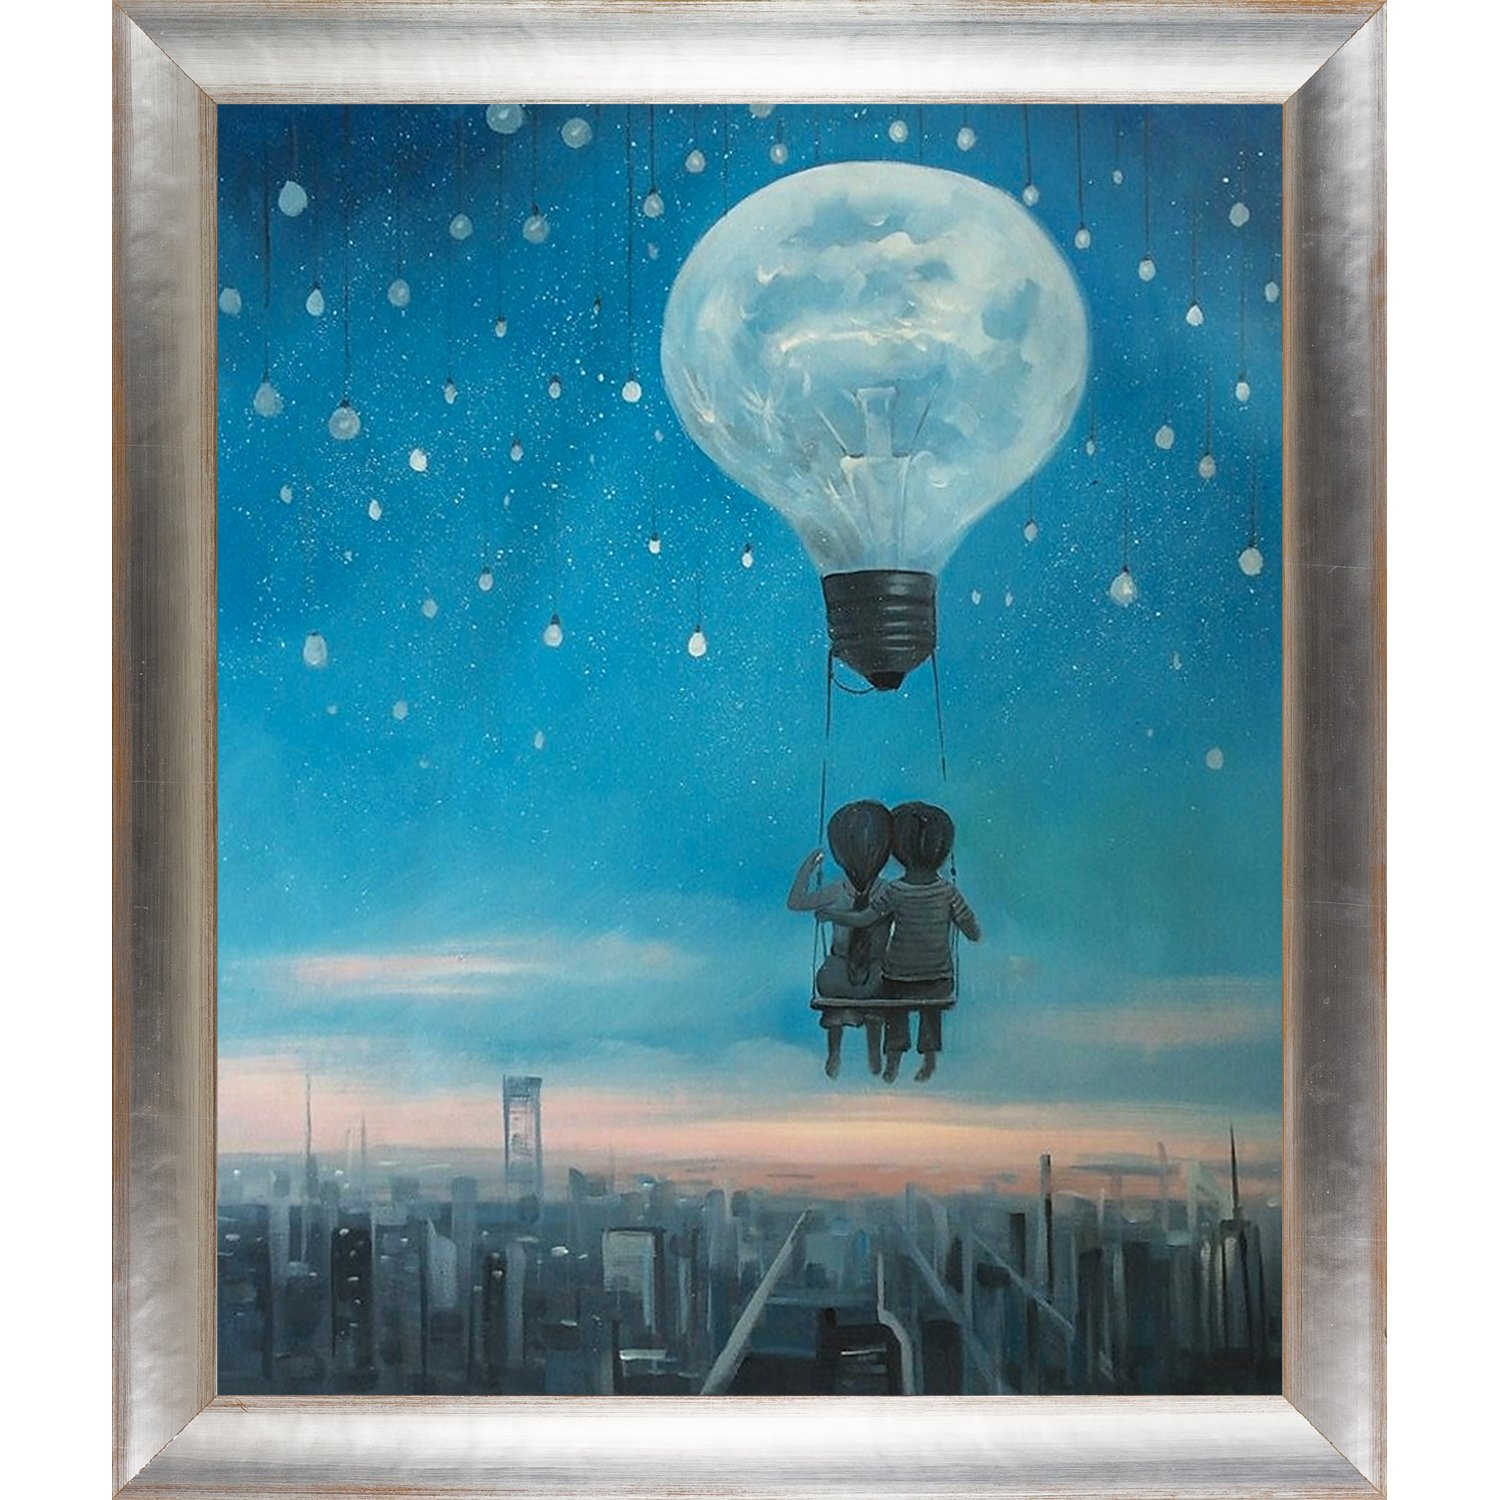 overstockArt Our Love Will Light the Night by Adrian Borda Framed Hand Painted Oil Reproduction